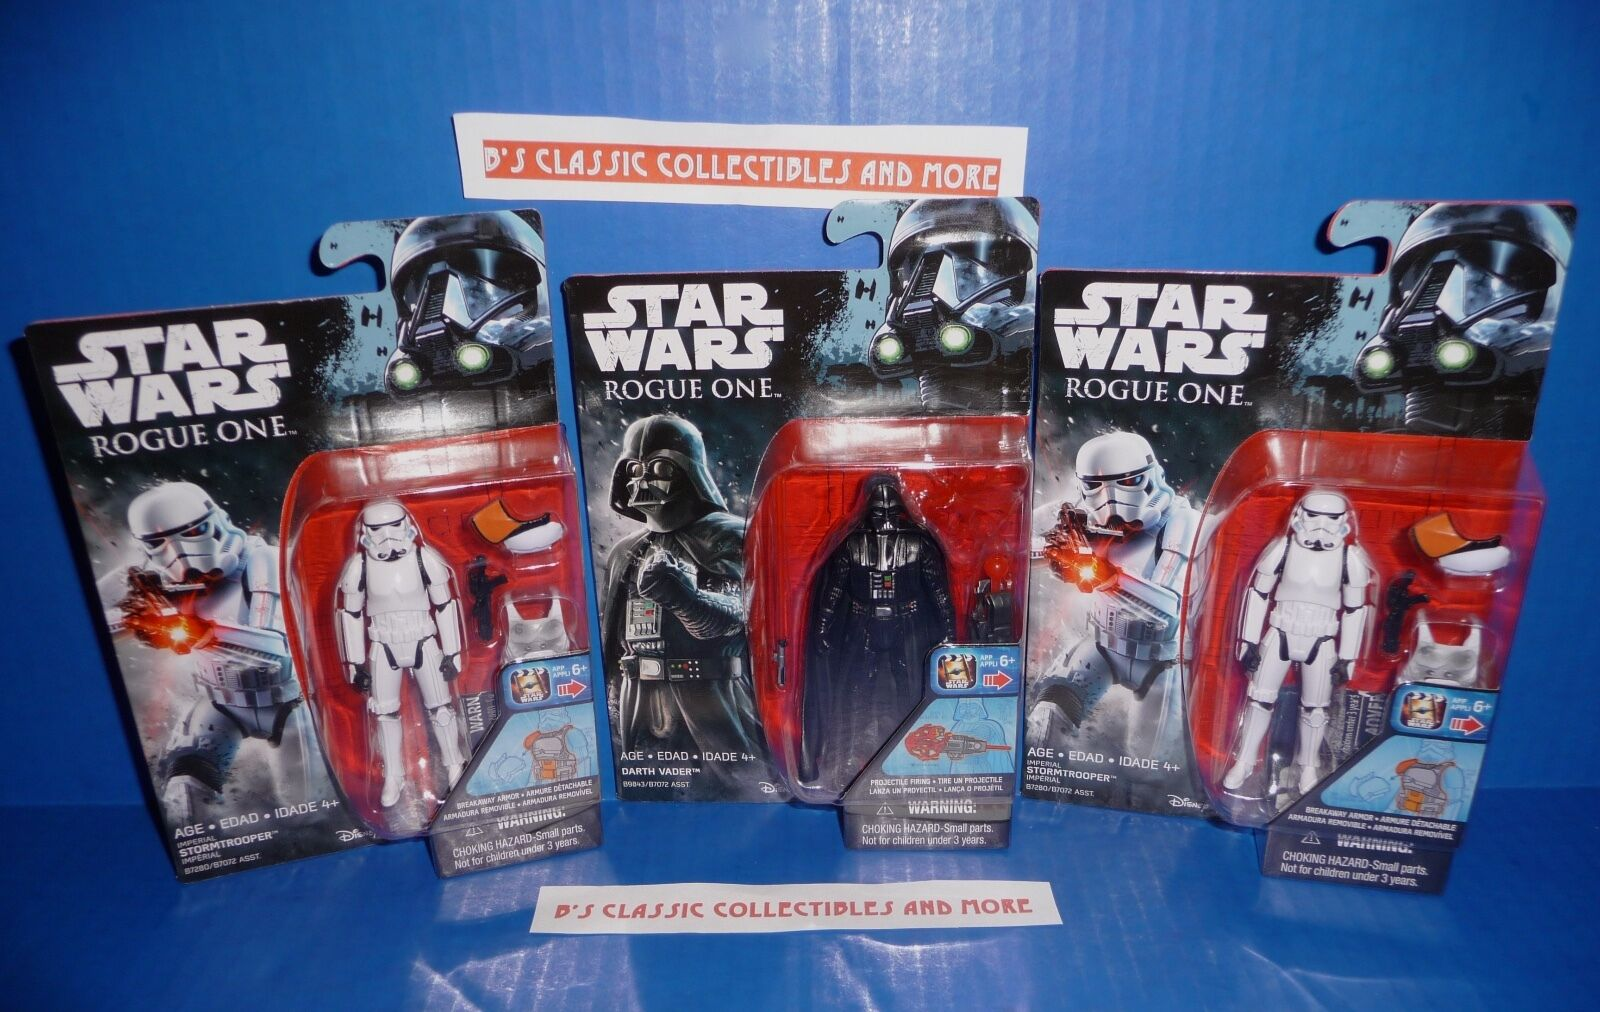 Star Wars Rogue One 3.75   Figures - Darth Vader, Imperial Stormtroopers New